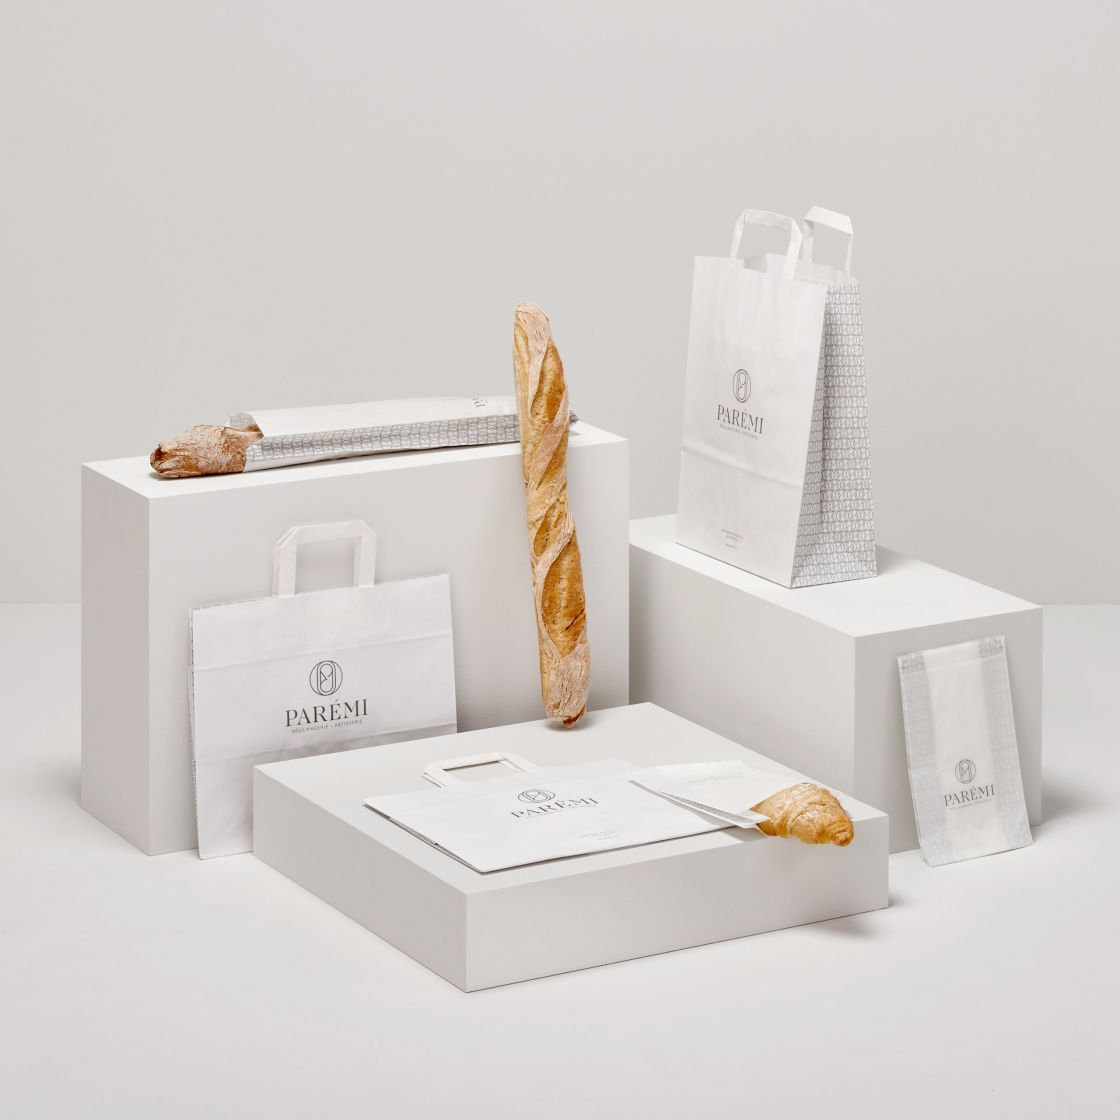 ASP Andreas Steiner Packaging Verpackung Sortiment Referenzen Paremi Boulangerie Patisserie